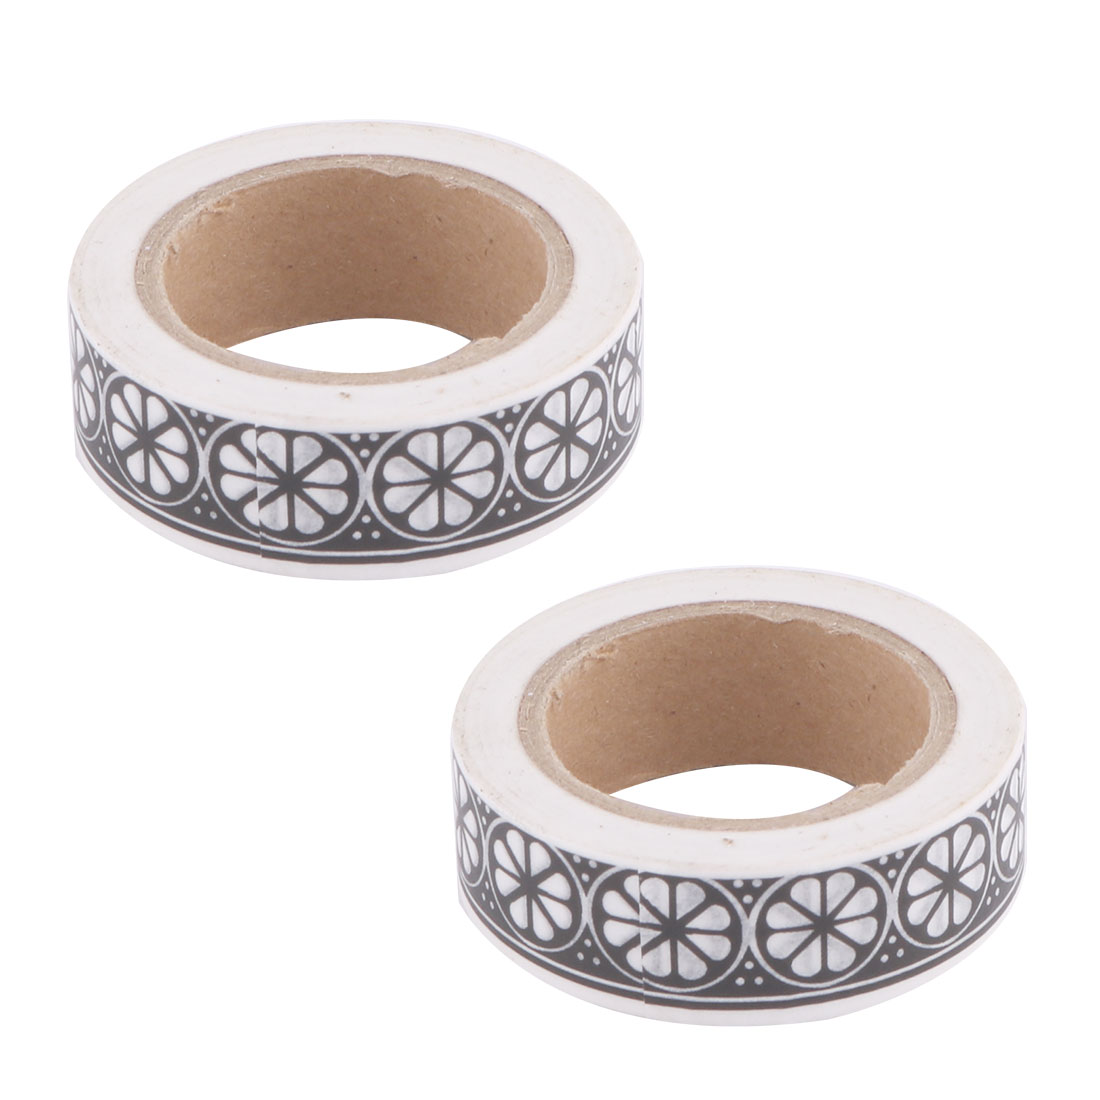 Household Festival Washi Paper Clover Pattern Decoration Tape 15mm x 10M 2 Pcs